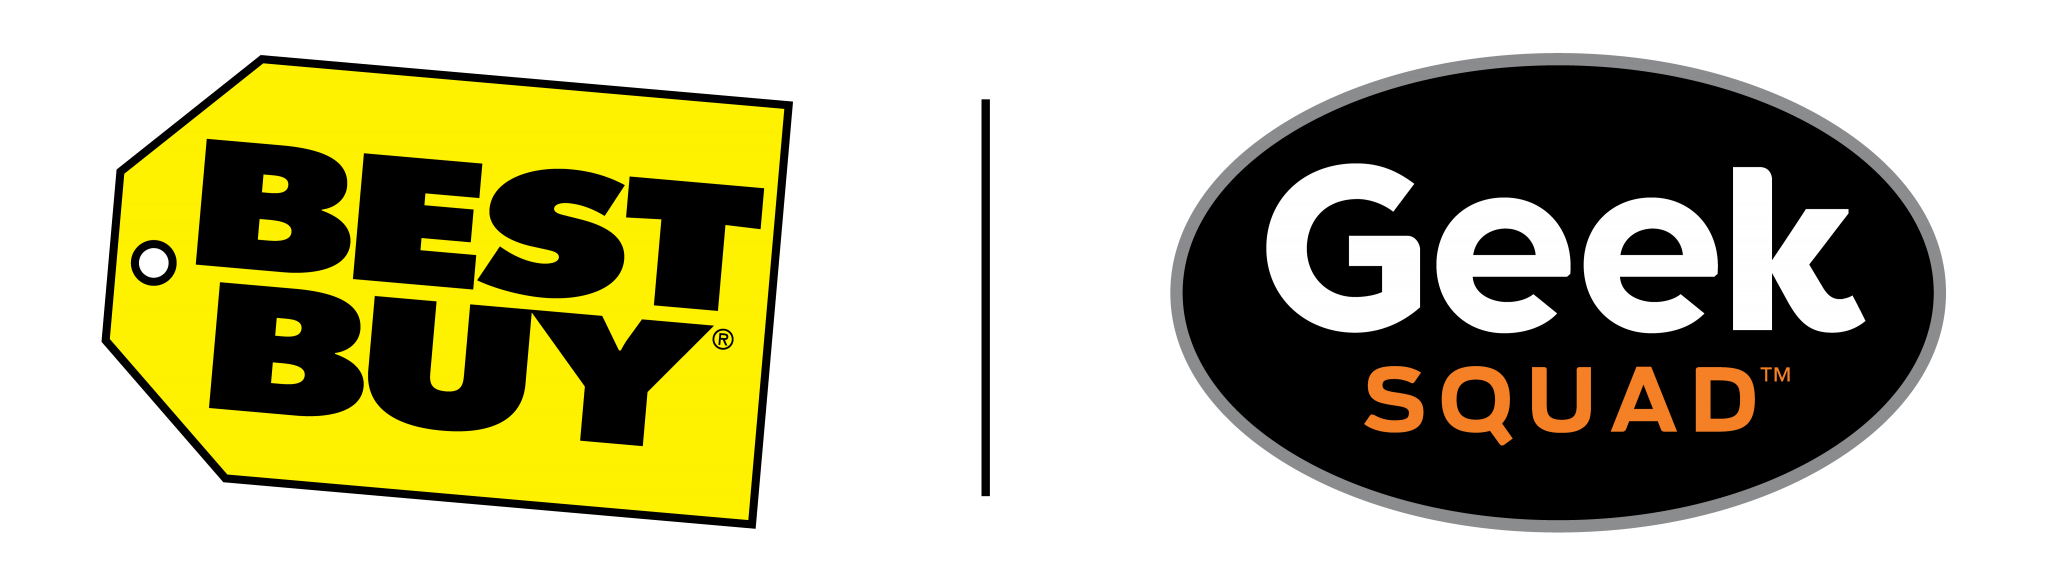 "two logos, left: yellow tag with black text reading ""BEST BUY"", right: black oval with whit text reading ""geek"" and orange text reading ""squad"""